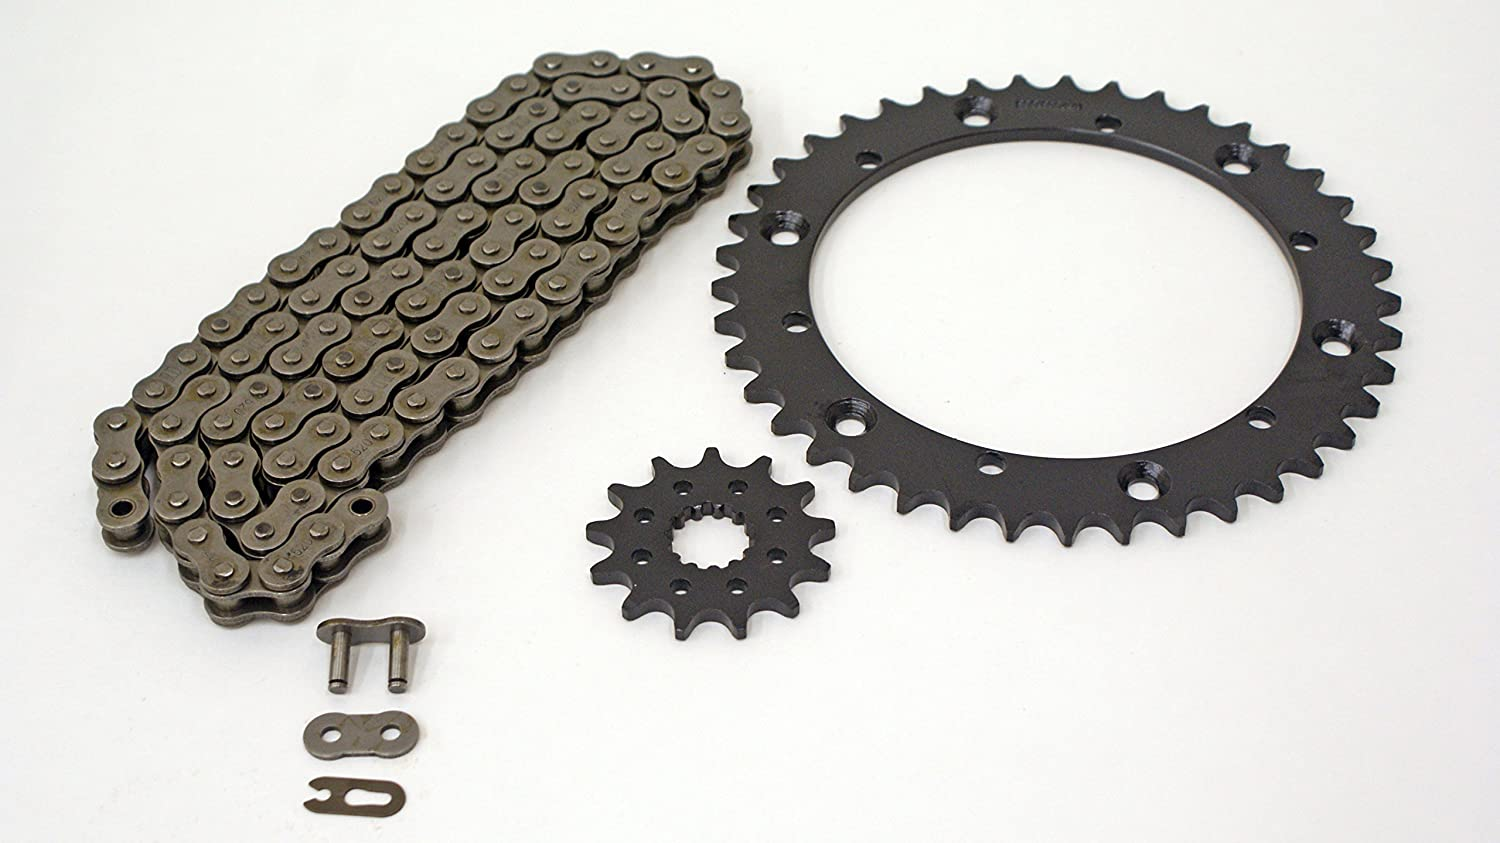 Non O-Ring Chain /& Silver Sprocket 15//41 102L fits 1995-2000 fits Yamaha 350 Warrior